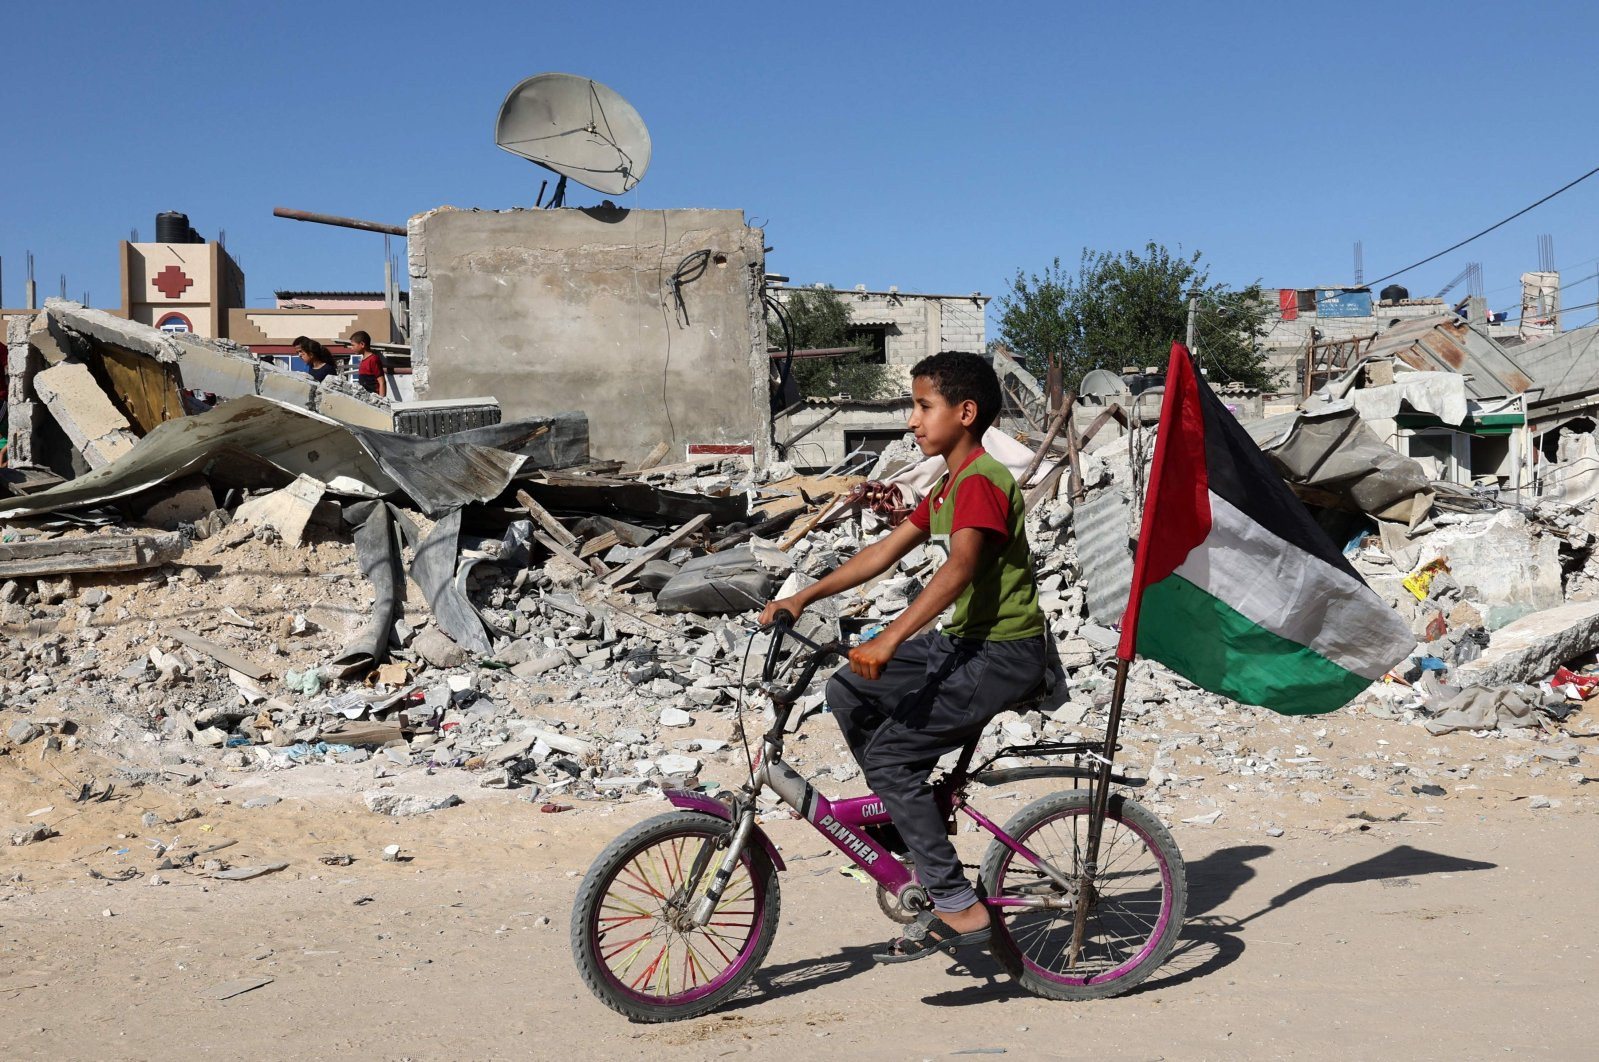 A Palestinian child rides his bicycle in front of the ruins of a building destroyed during recent Israeli bombing in Rafah, in the southern Gaza Strip, Palestine, on May 26, 2021. (AFP Photo)